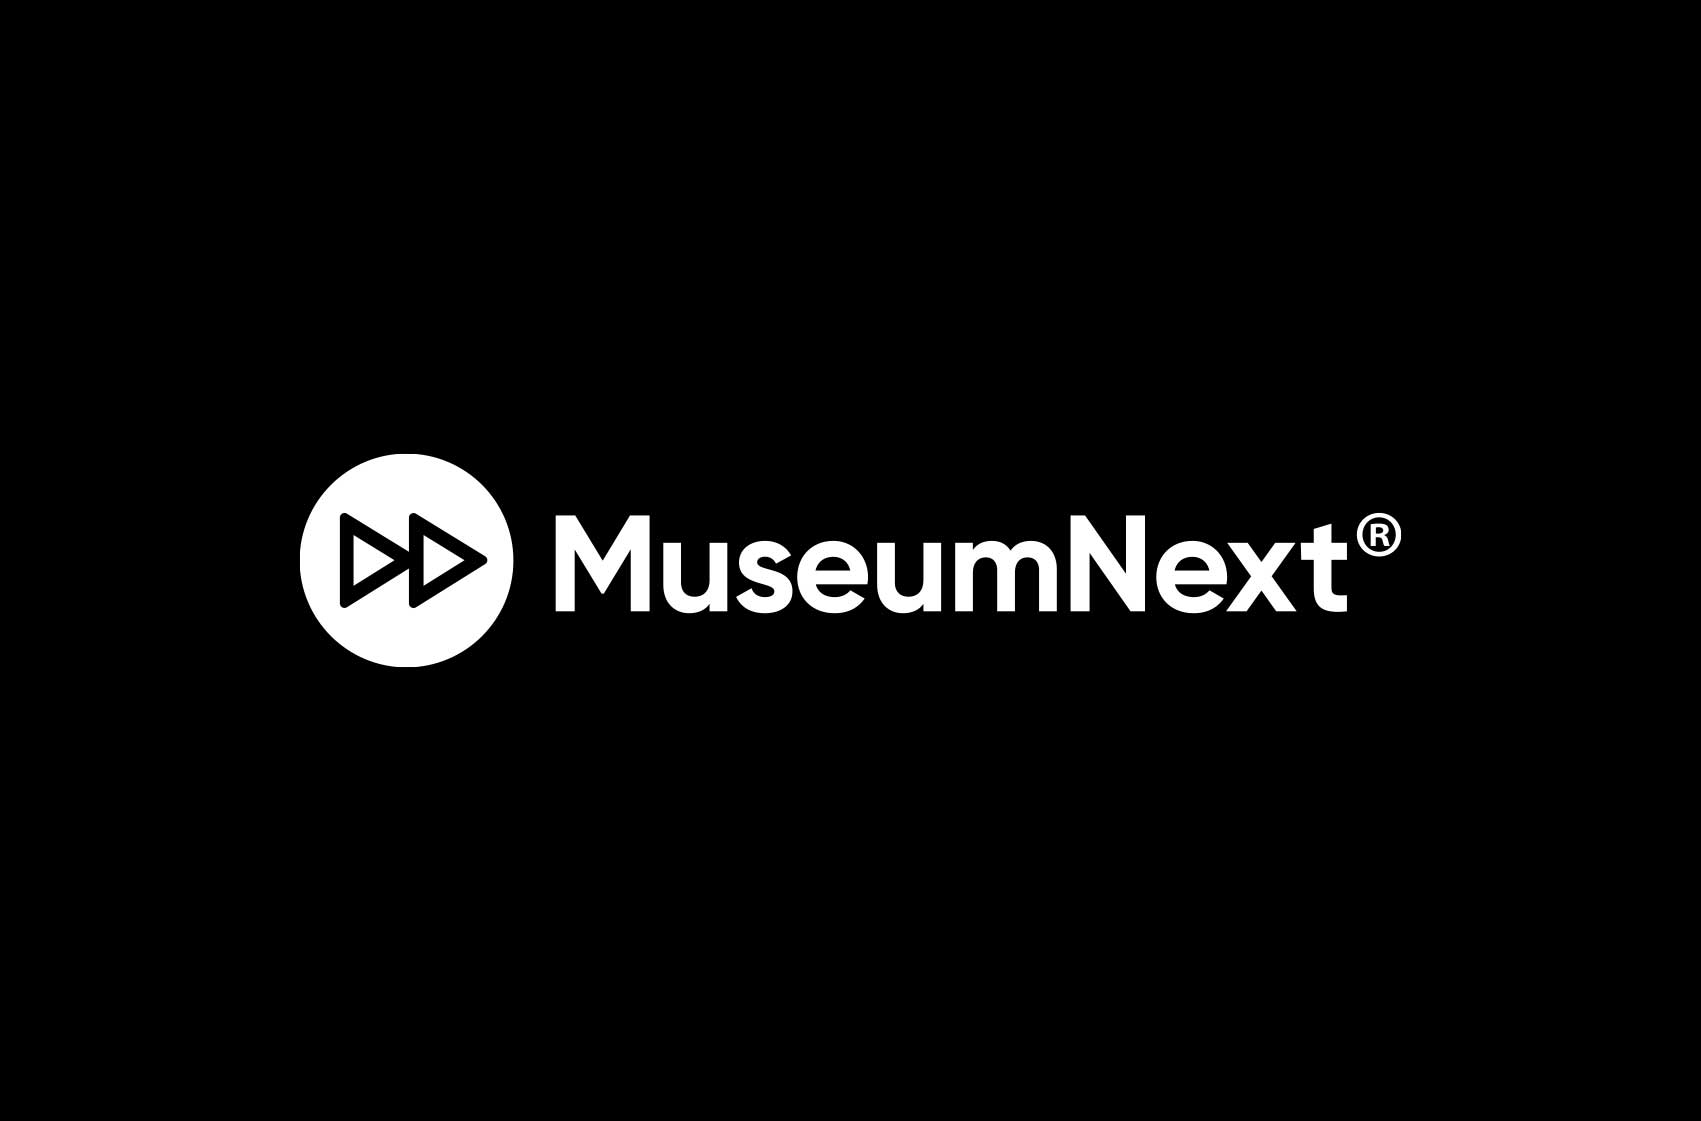 How to get people into museums?